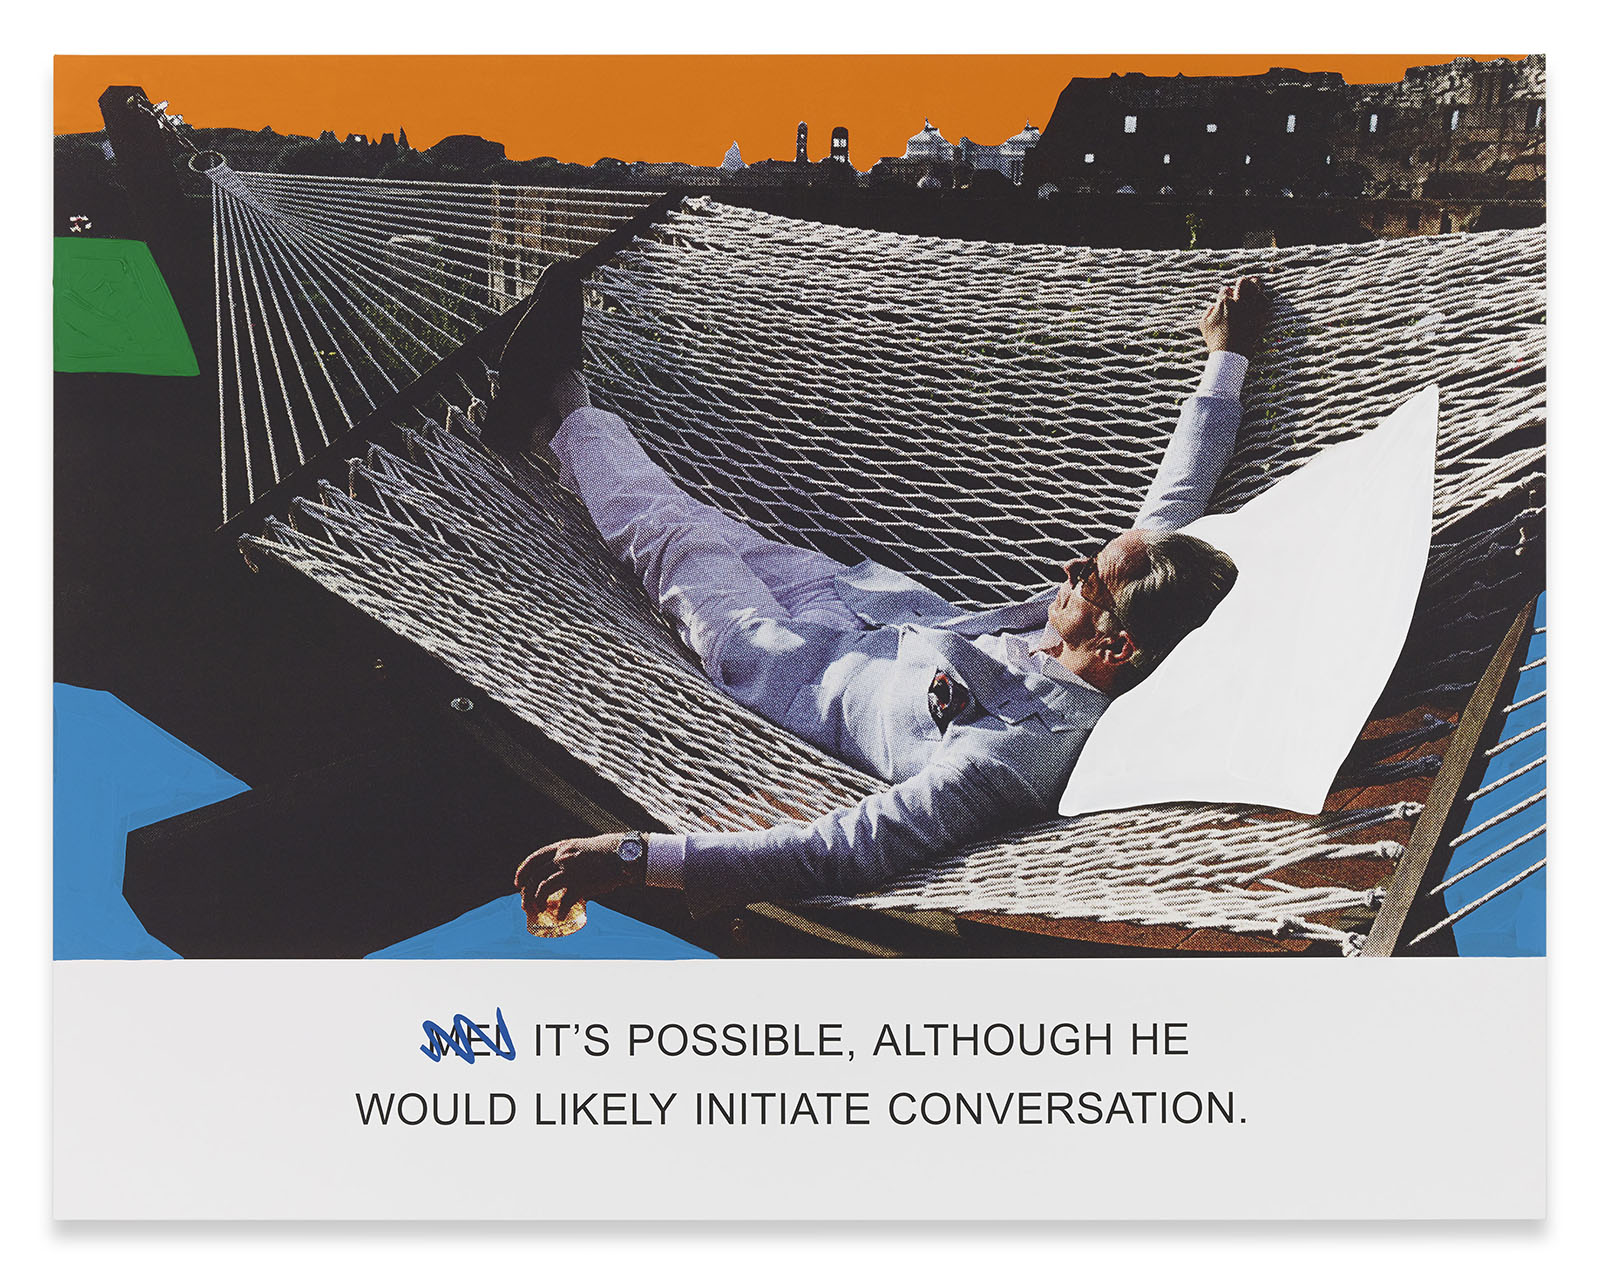 It's Possible, Although..., 2015 (c) John Baldessari Courtesy the artist, Marian Goodman Gallery and Sprüth Magers Photography: Joshua White, 2015